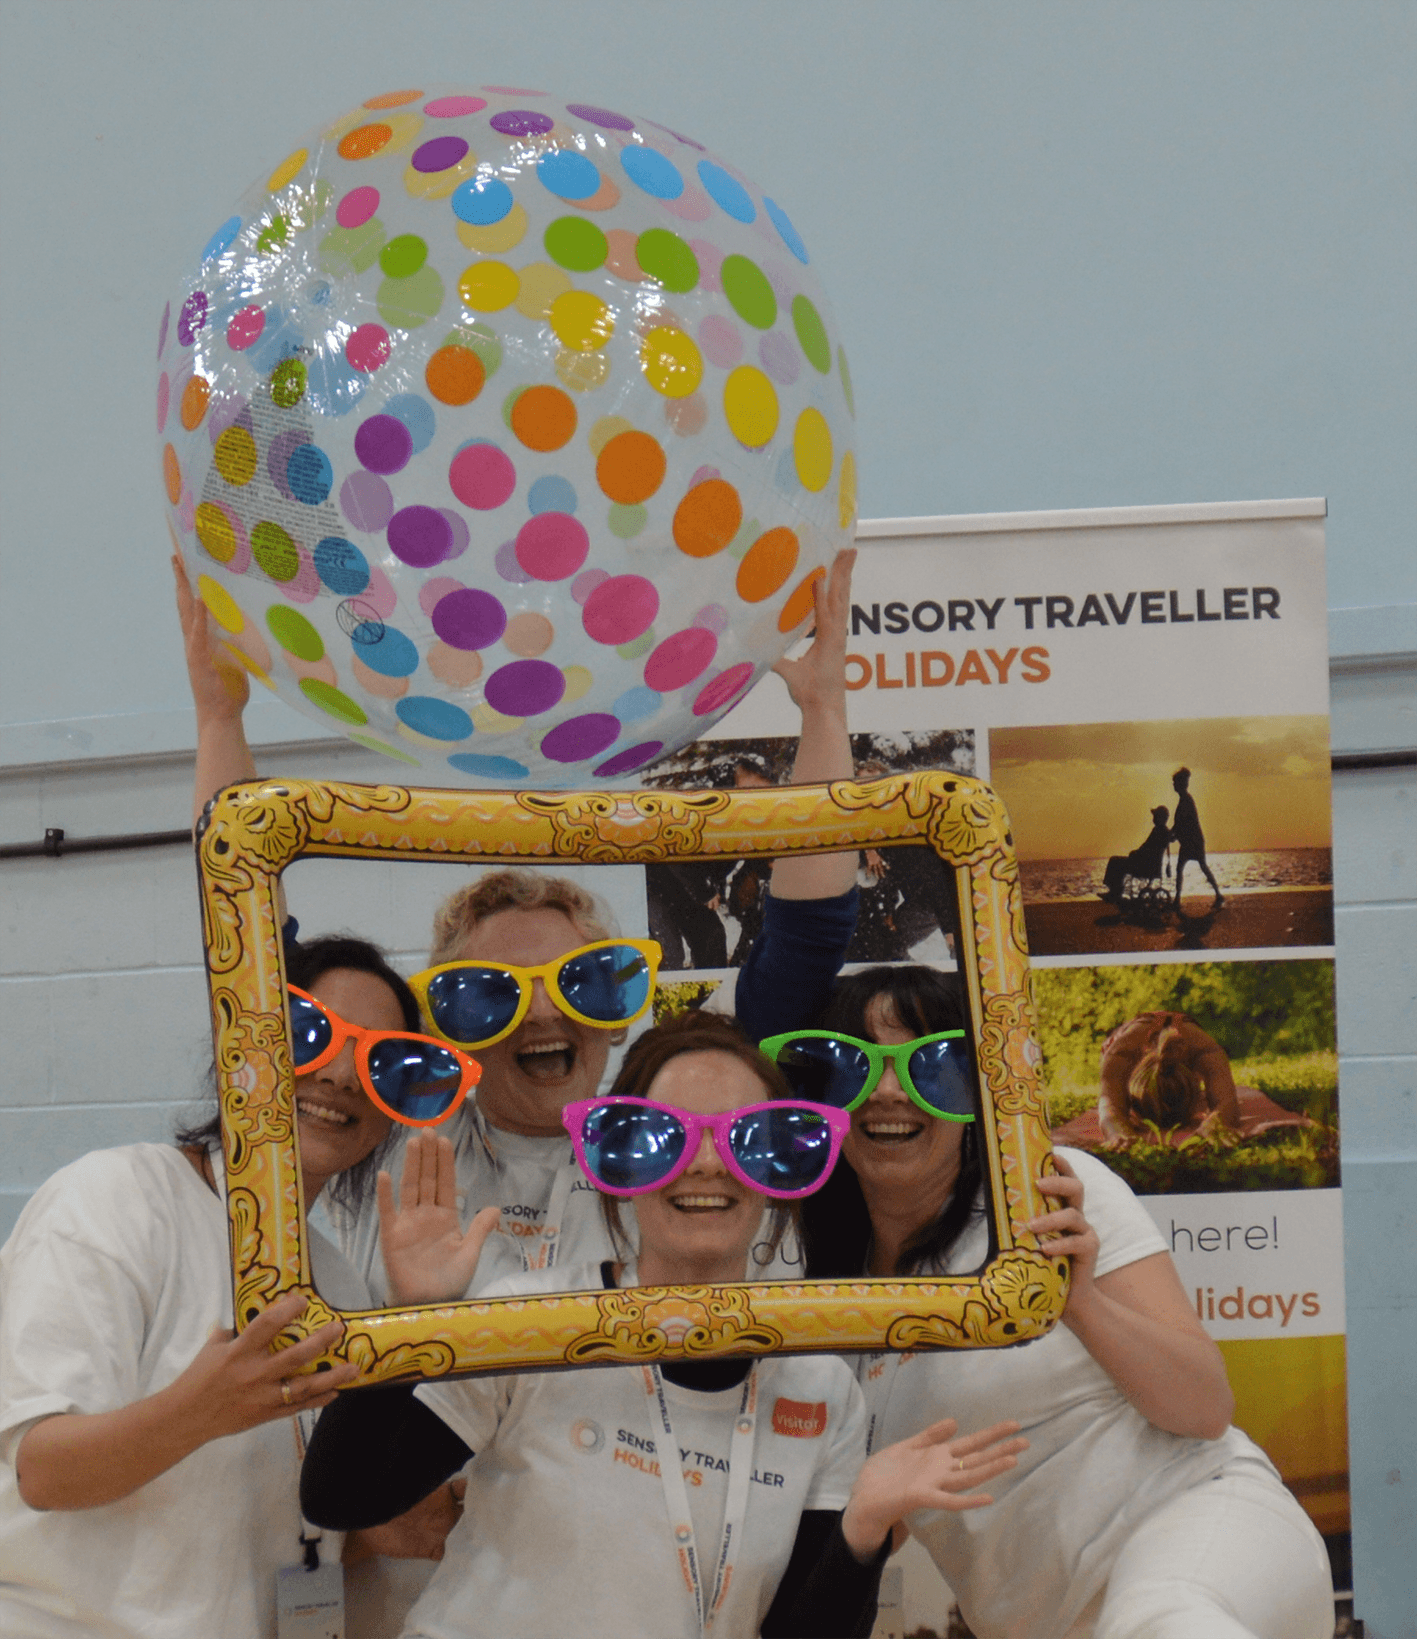 Our Team Sensory Traveller Holidays